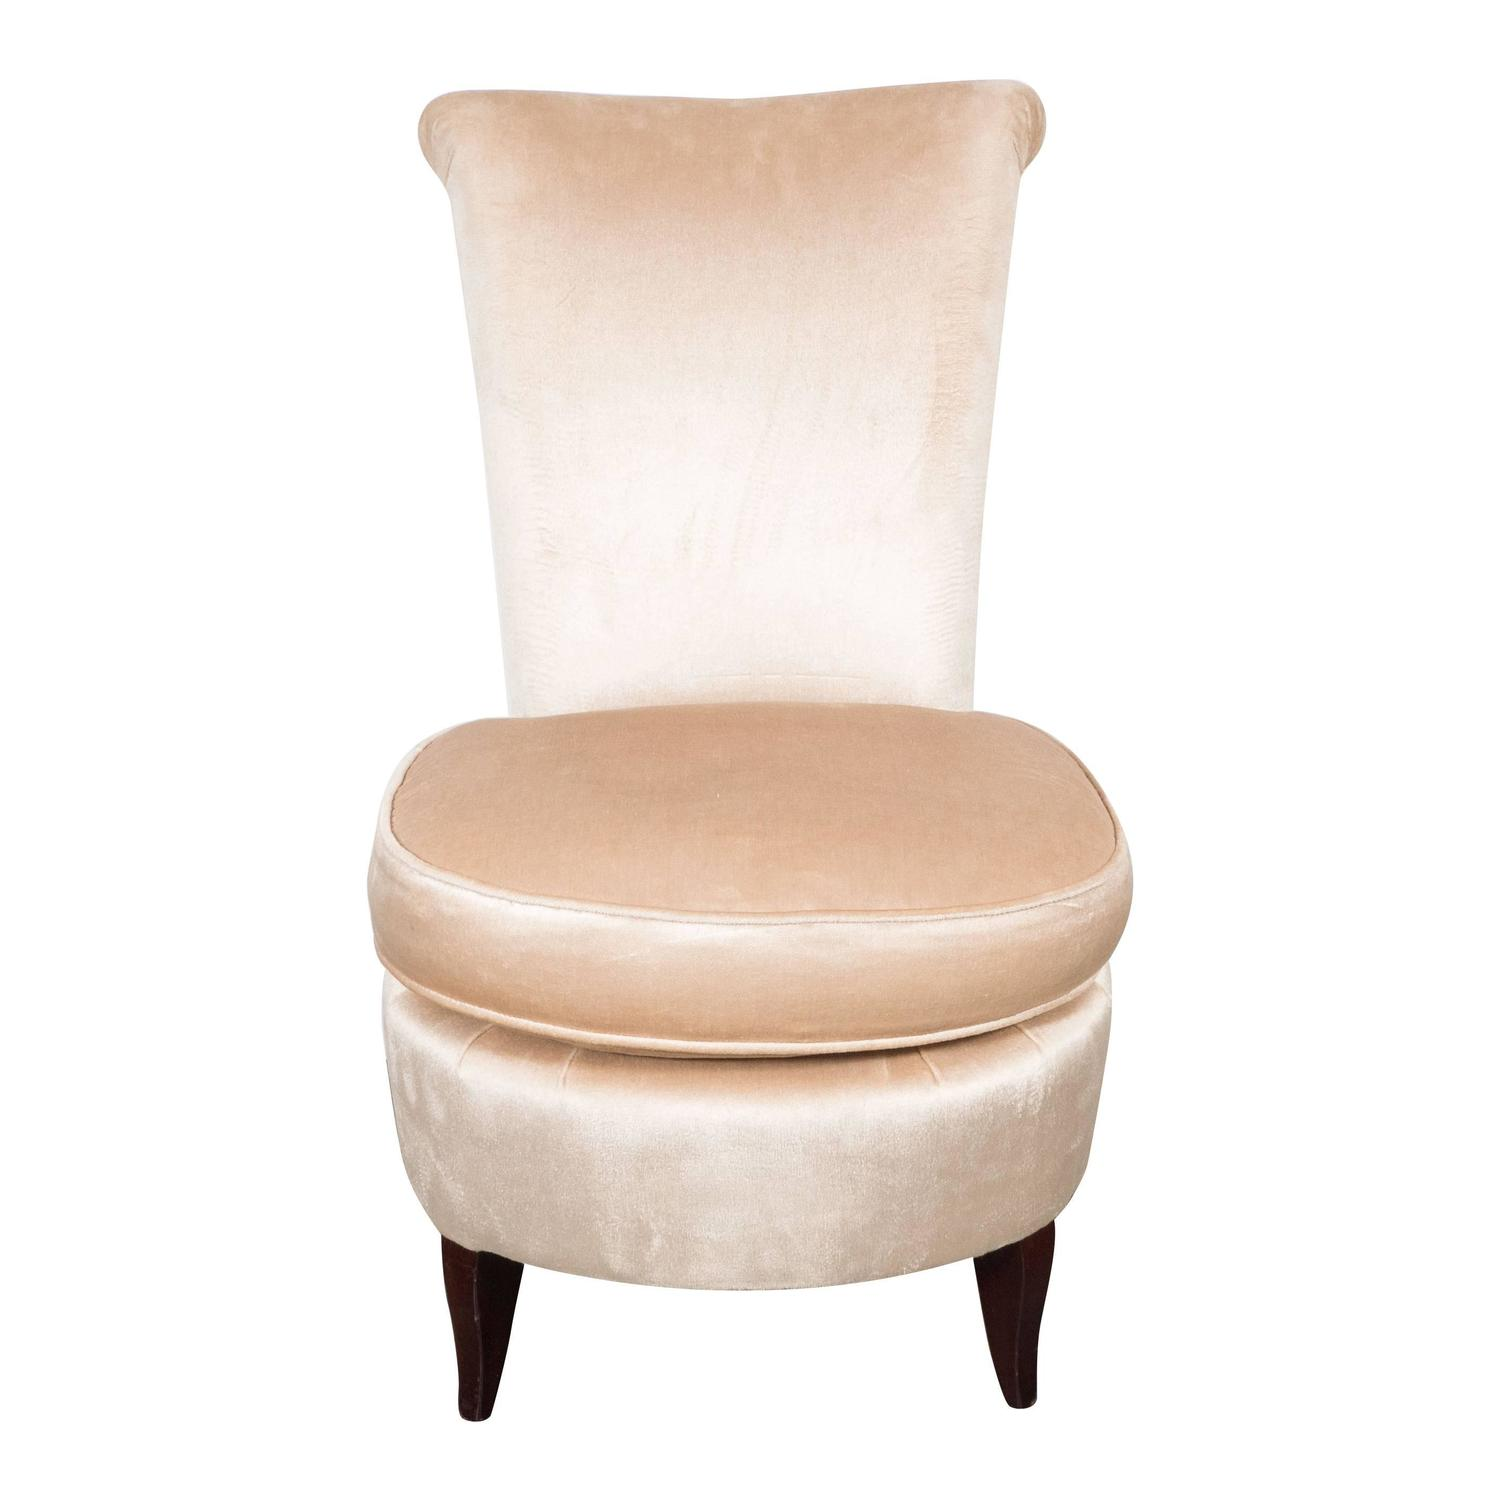 Hollywood regency scroll back vanity chair in cream velvet with splayed legs for sale at 1stdibs - Vanity stool with back ...